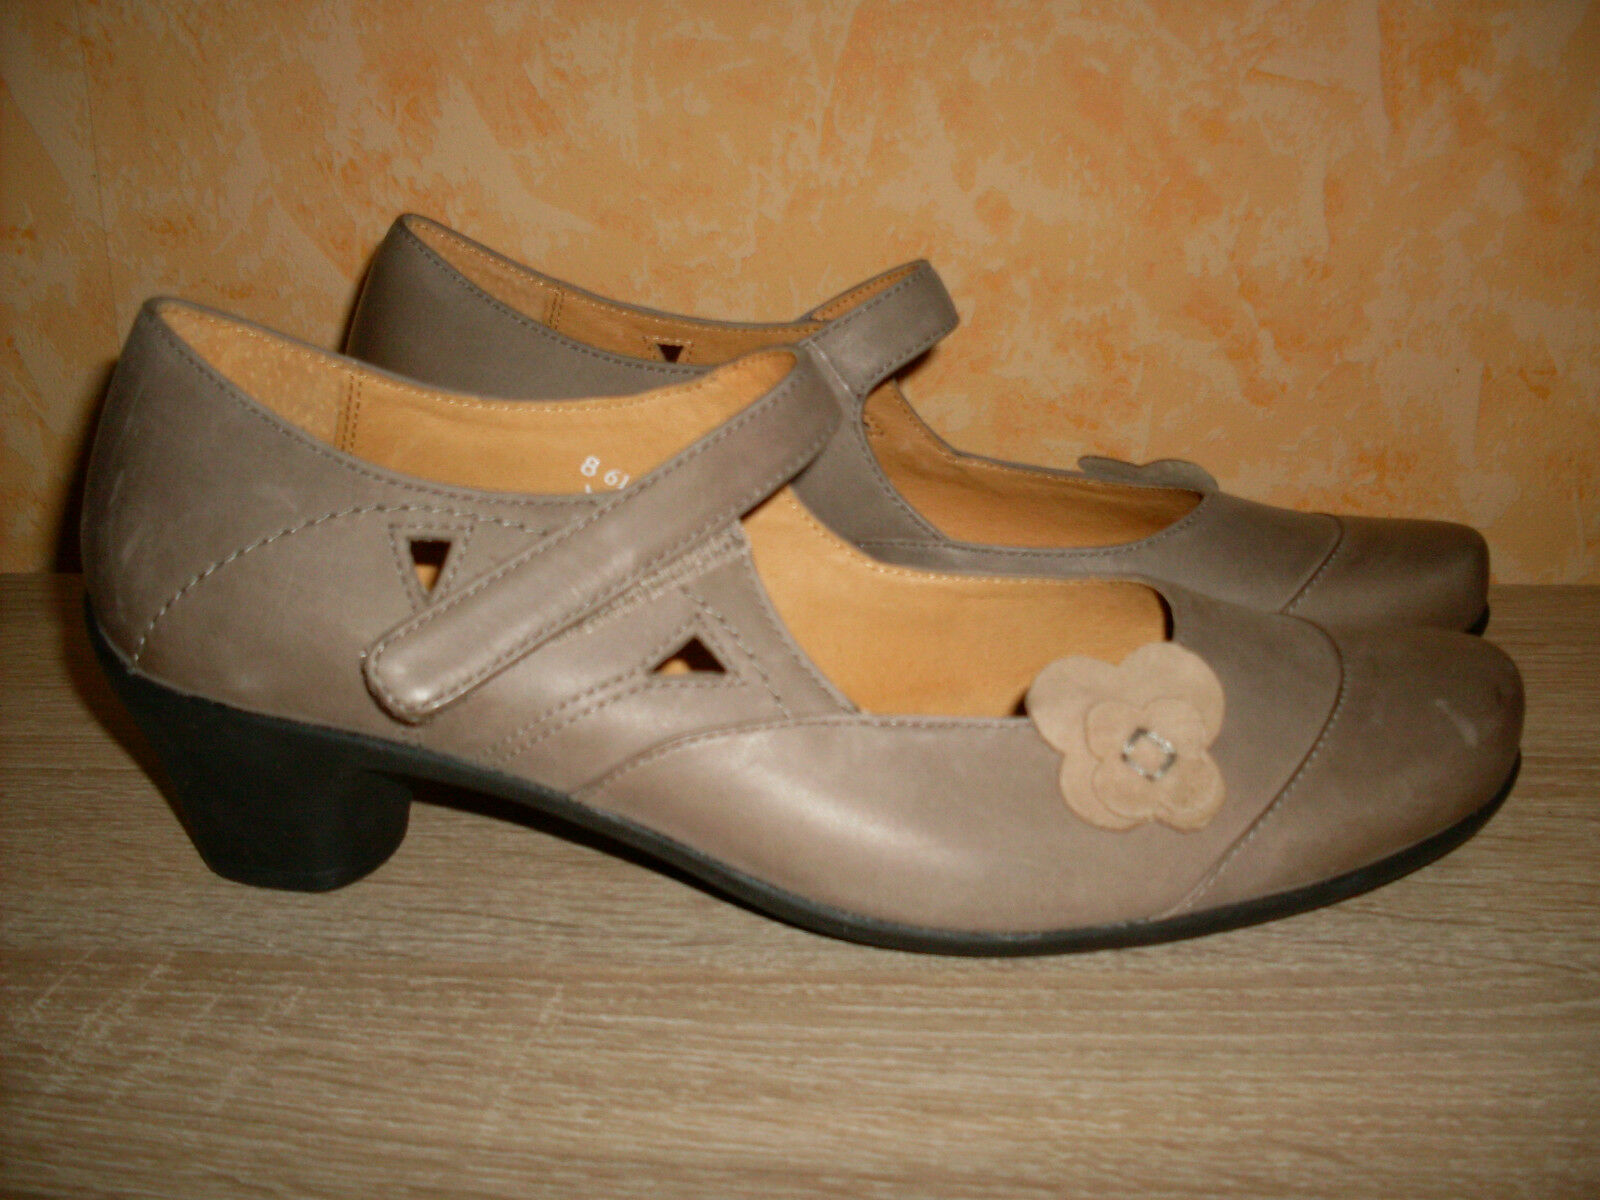 Theresia M. Edle Klettpumps NEU Gr. 8 42 H in taupe & Nappa Leder mit Blüte